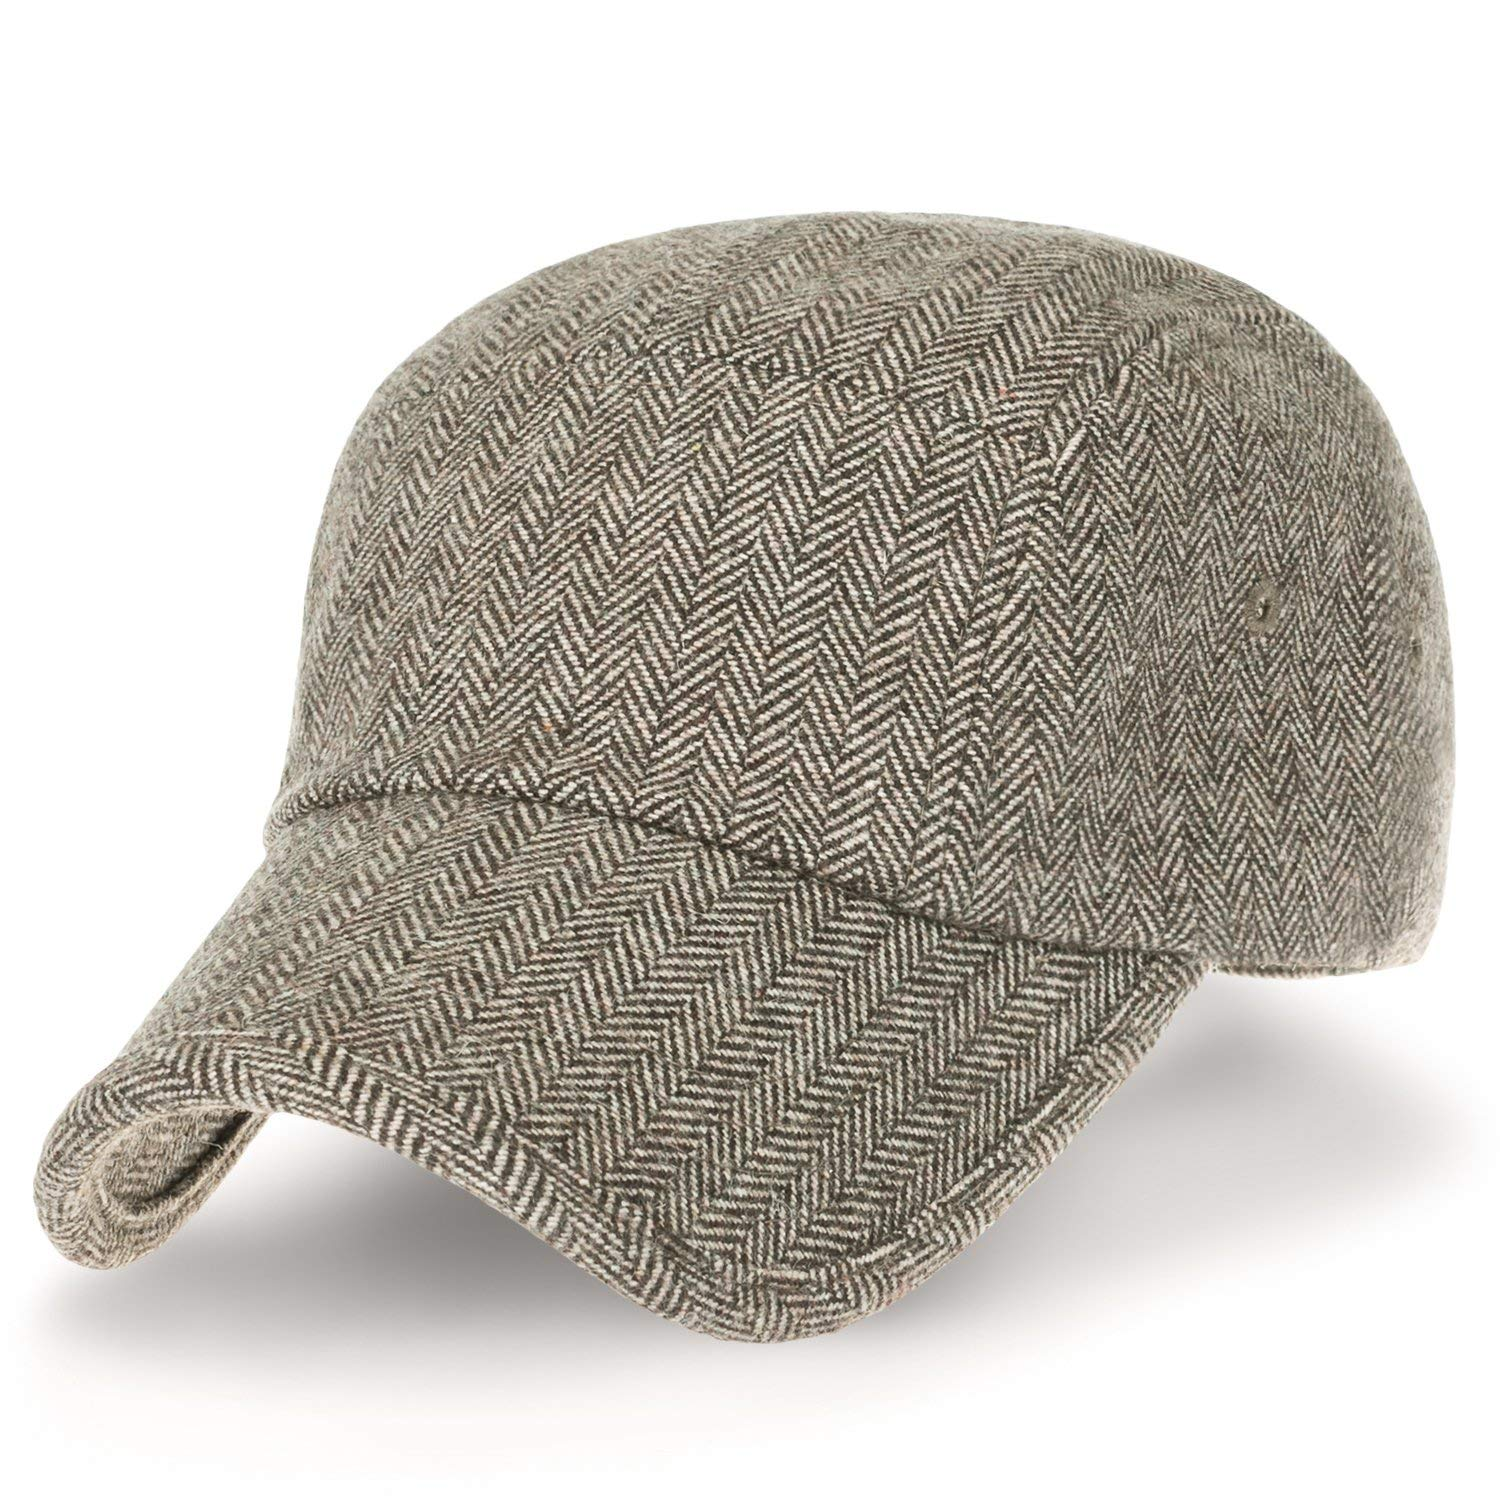 c31b2249f8cb83 Get Quotations · ililily Herringbone Pattern Military Army Hat Wool Blend  Adjustable Cadet Cap